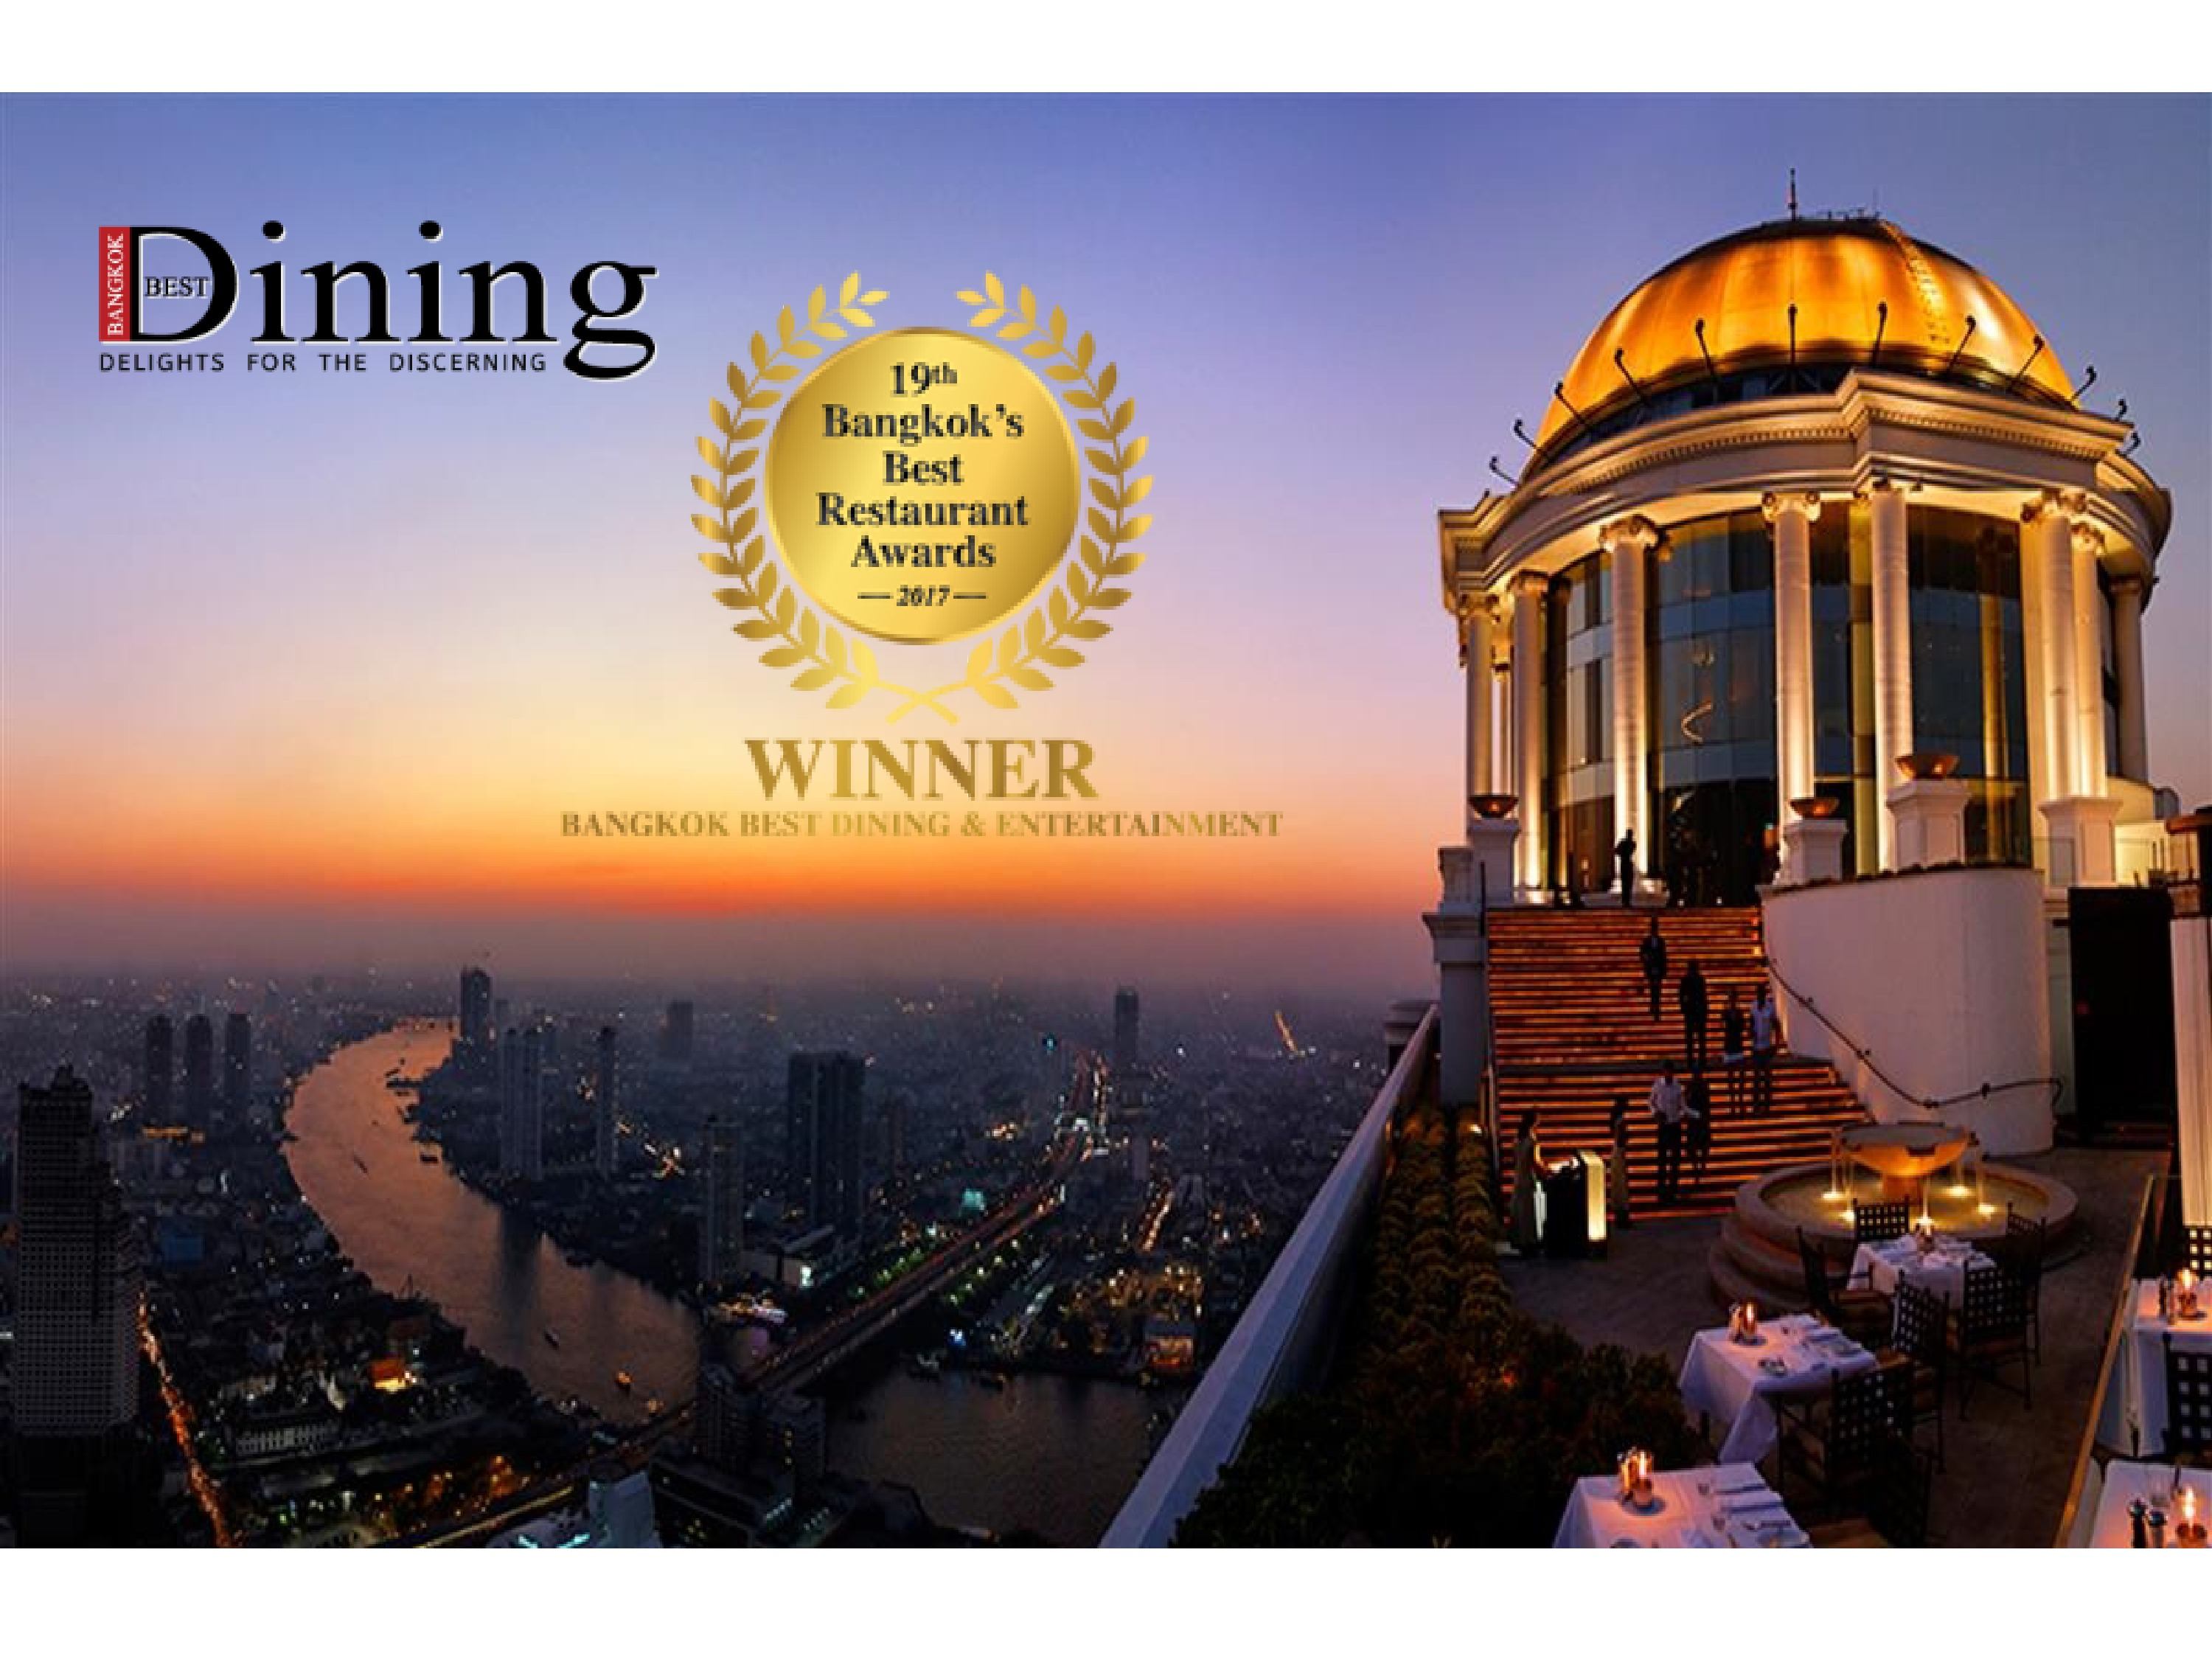 19th Bangkok Best Restaurant Awards at Bangkok Best Dining Get the details of the finest restaurants, bars & clubs, dining venue with Bangkok Best Dining Guide. Here, you get 19th Awards winning Bangkok best Restaurants. Visit http://www.bangkokbestdining.com.